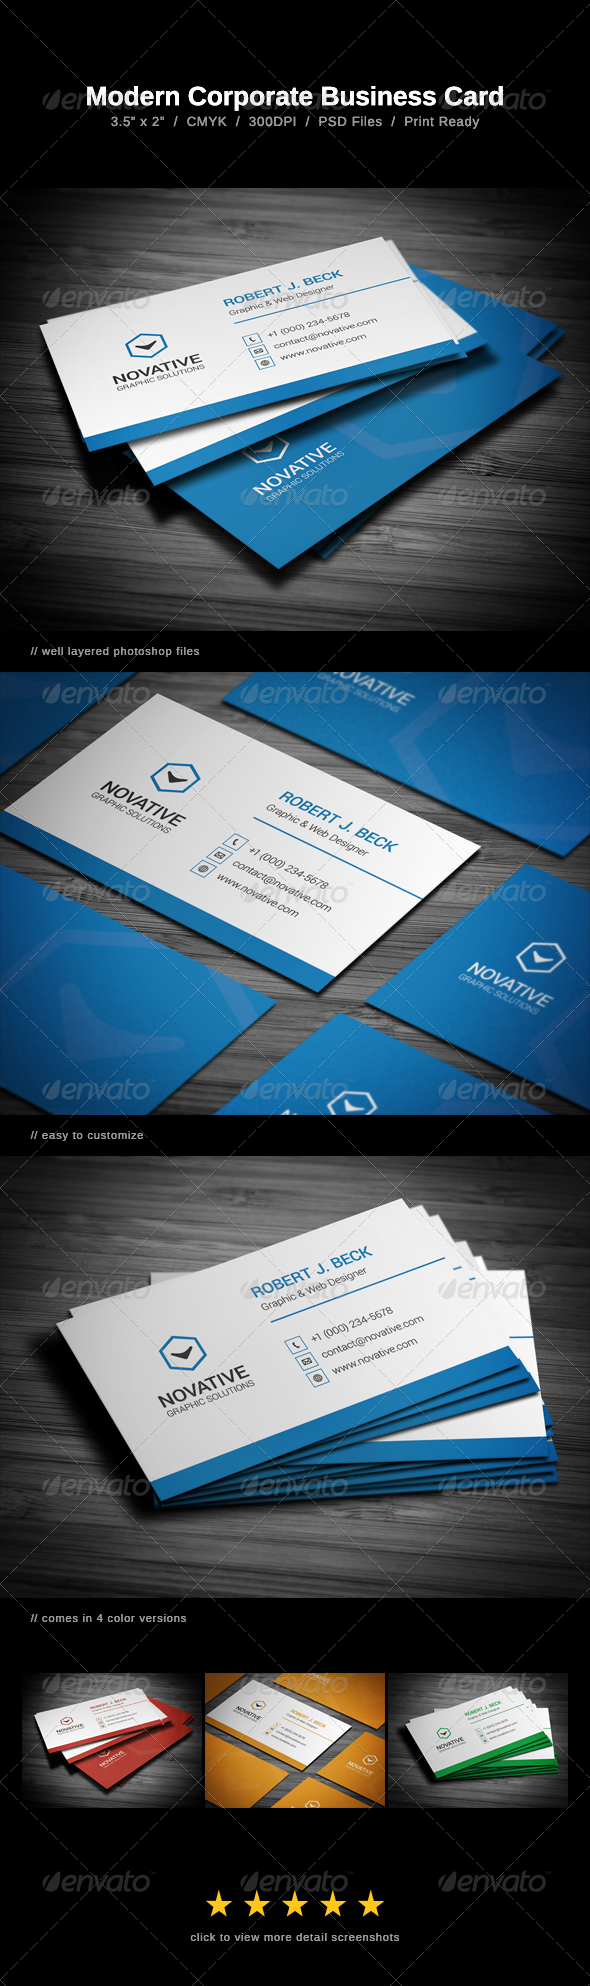 GraphicRiver Modern Corporate Business Card 7499882